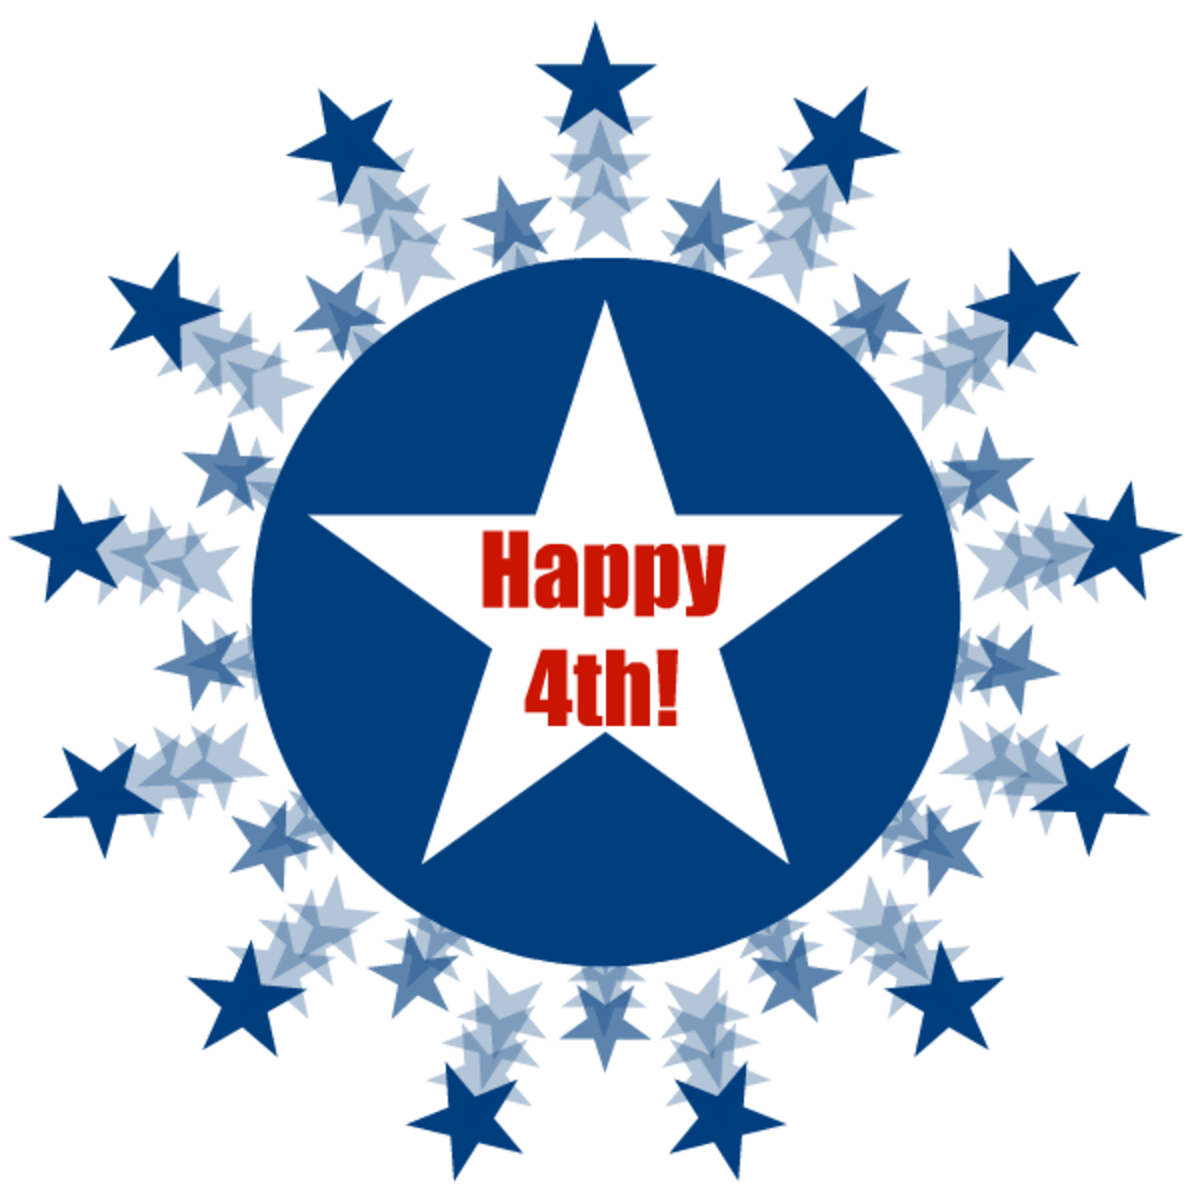 July 4th clipart: blue stars and circle